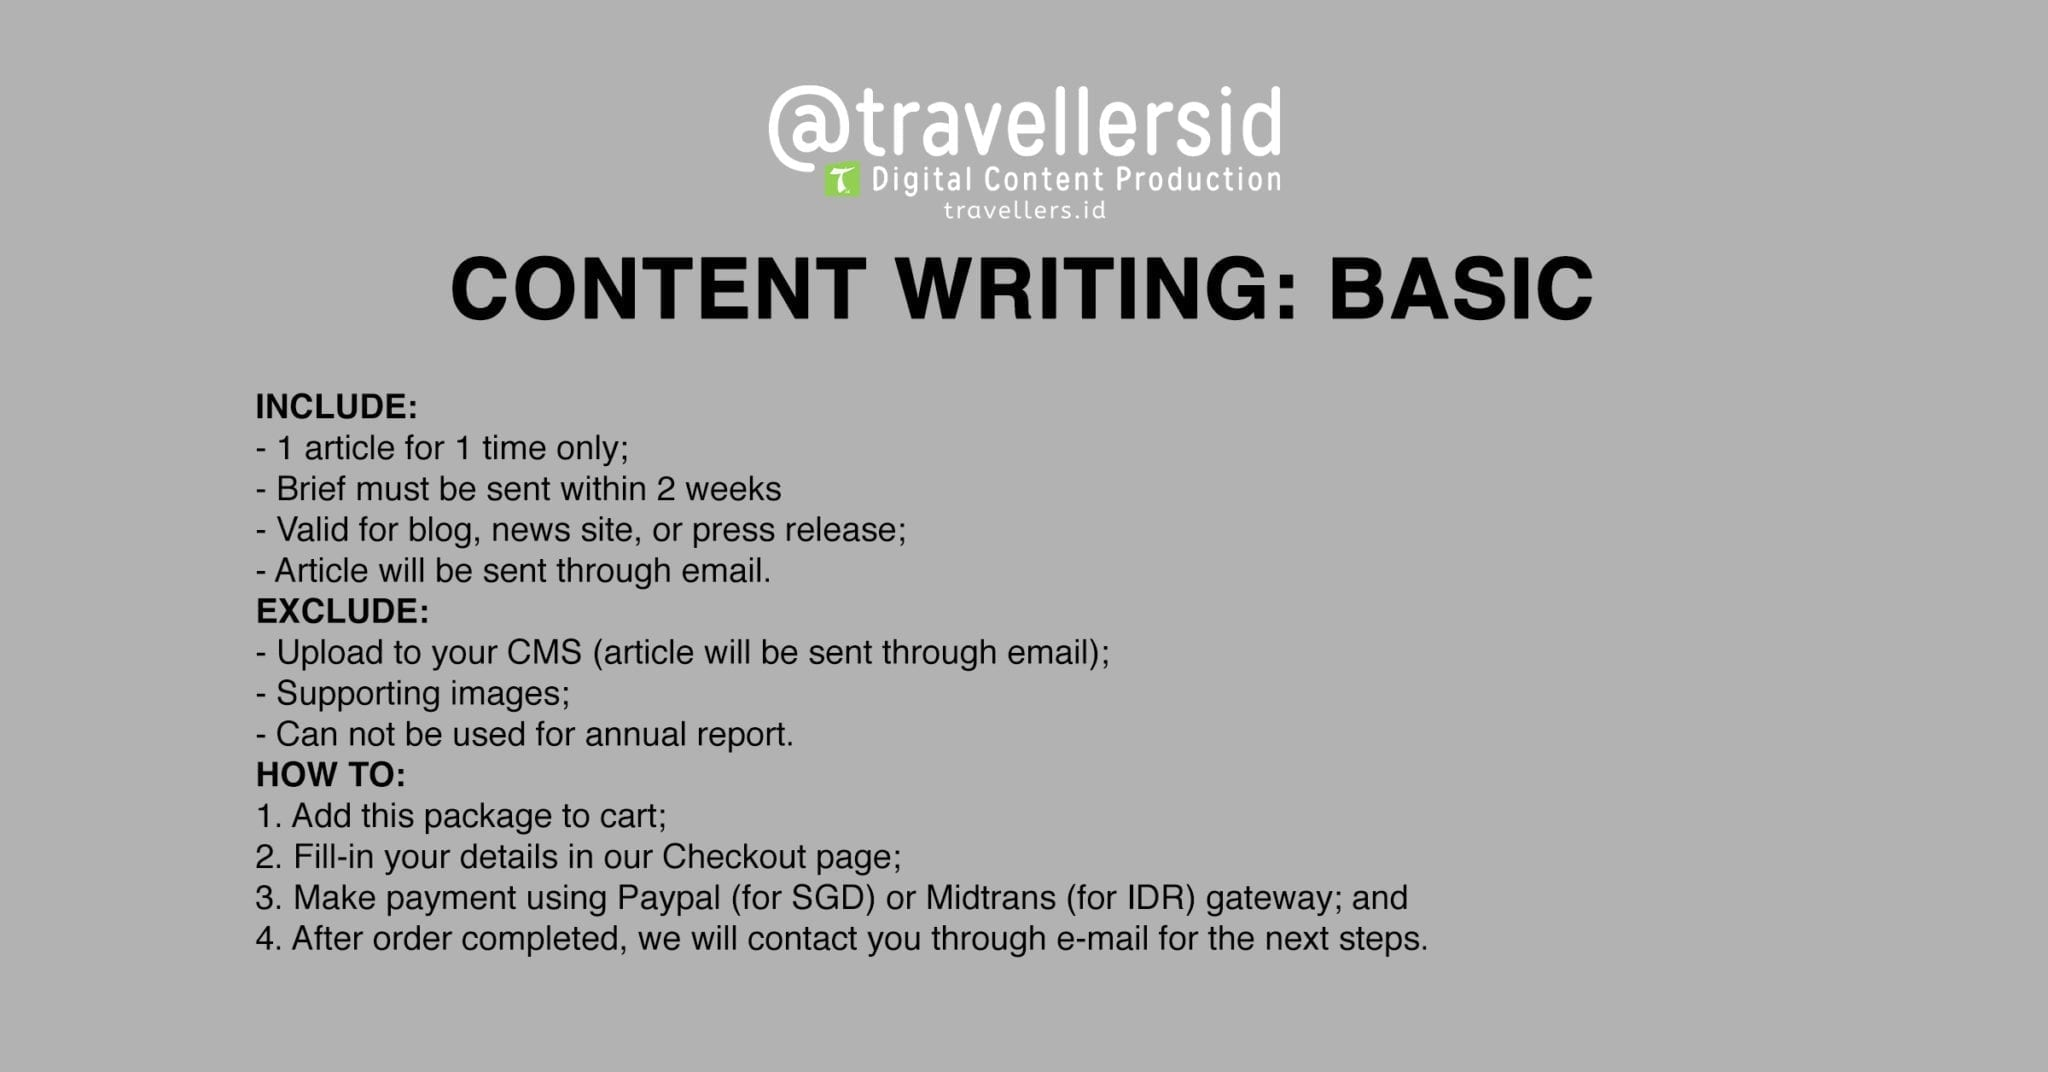 @TravellersID Content Writing Services - Basic